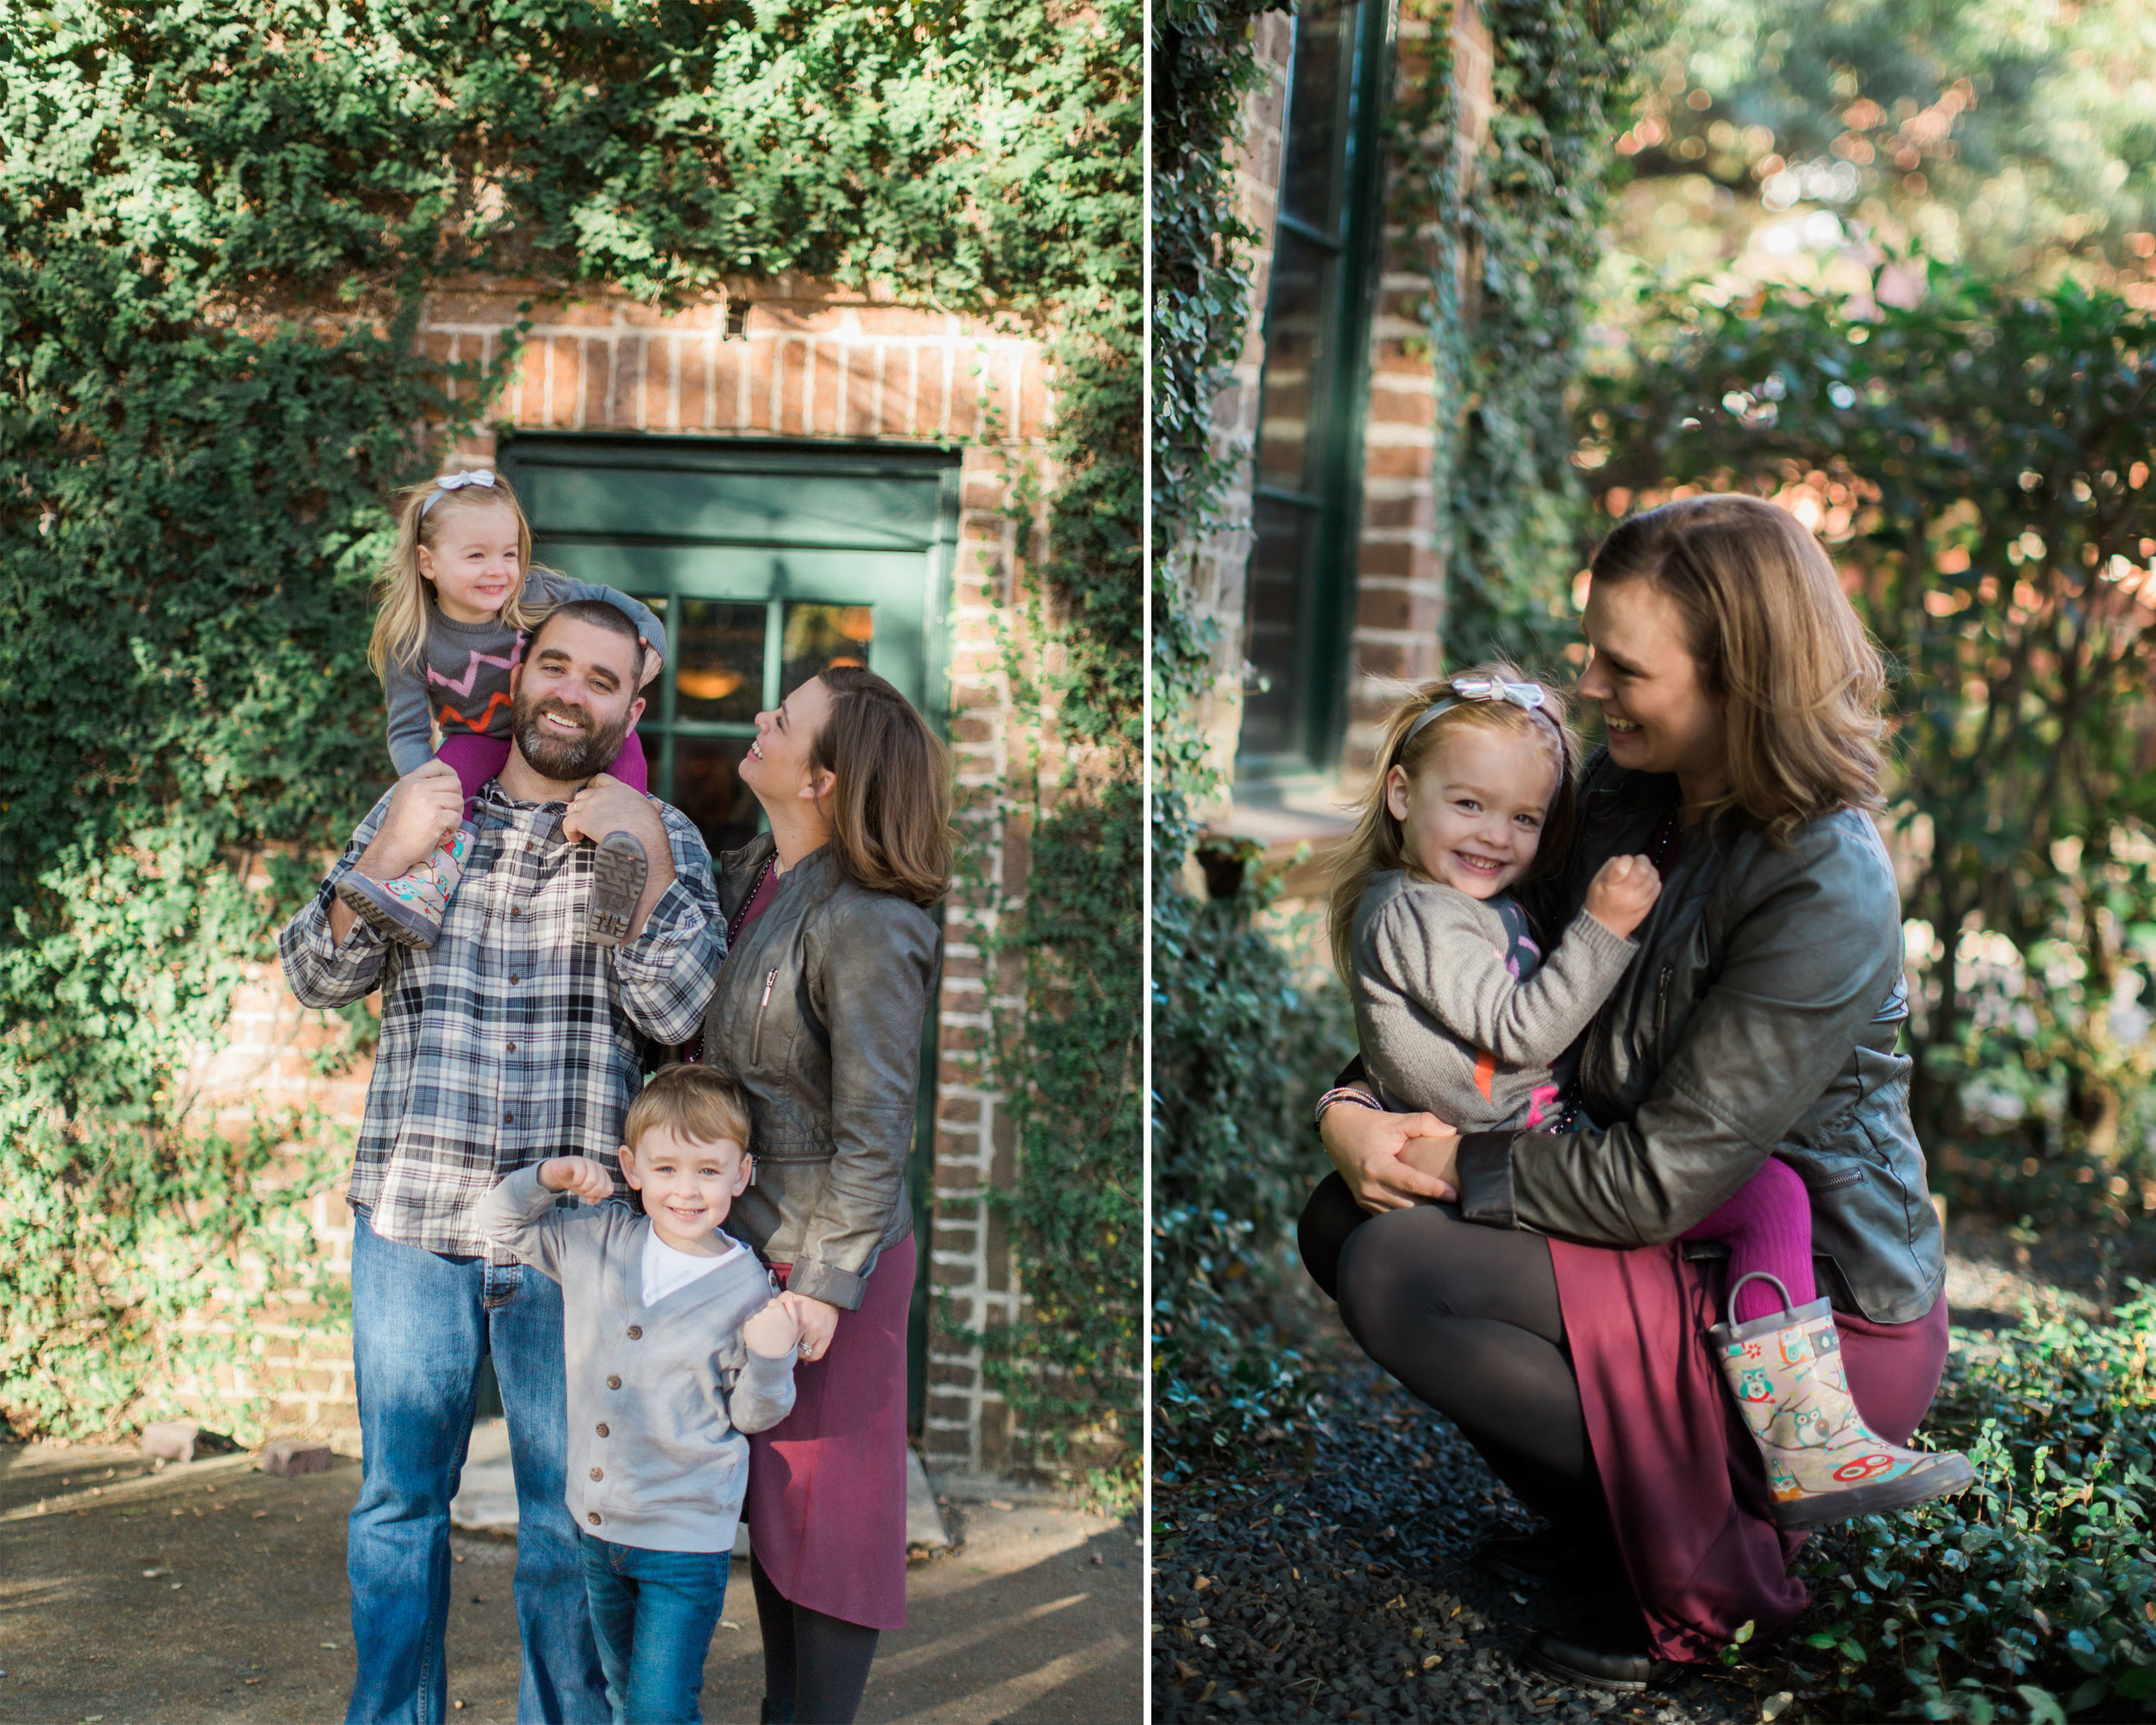 We were fortunate to be asked to photograph the Matos family once again! These are some of my favorite images that were captured of the day. Jessica is a portrait photographer aswell, so it is always fun to be able to photograph other creatives and their families. Enjoy!